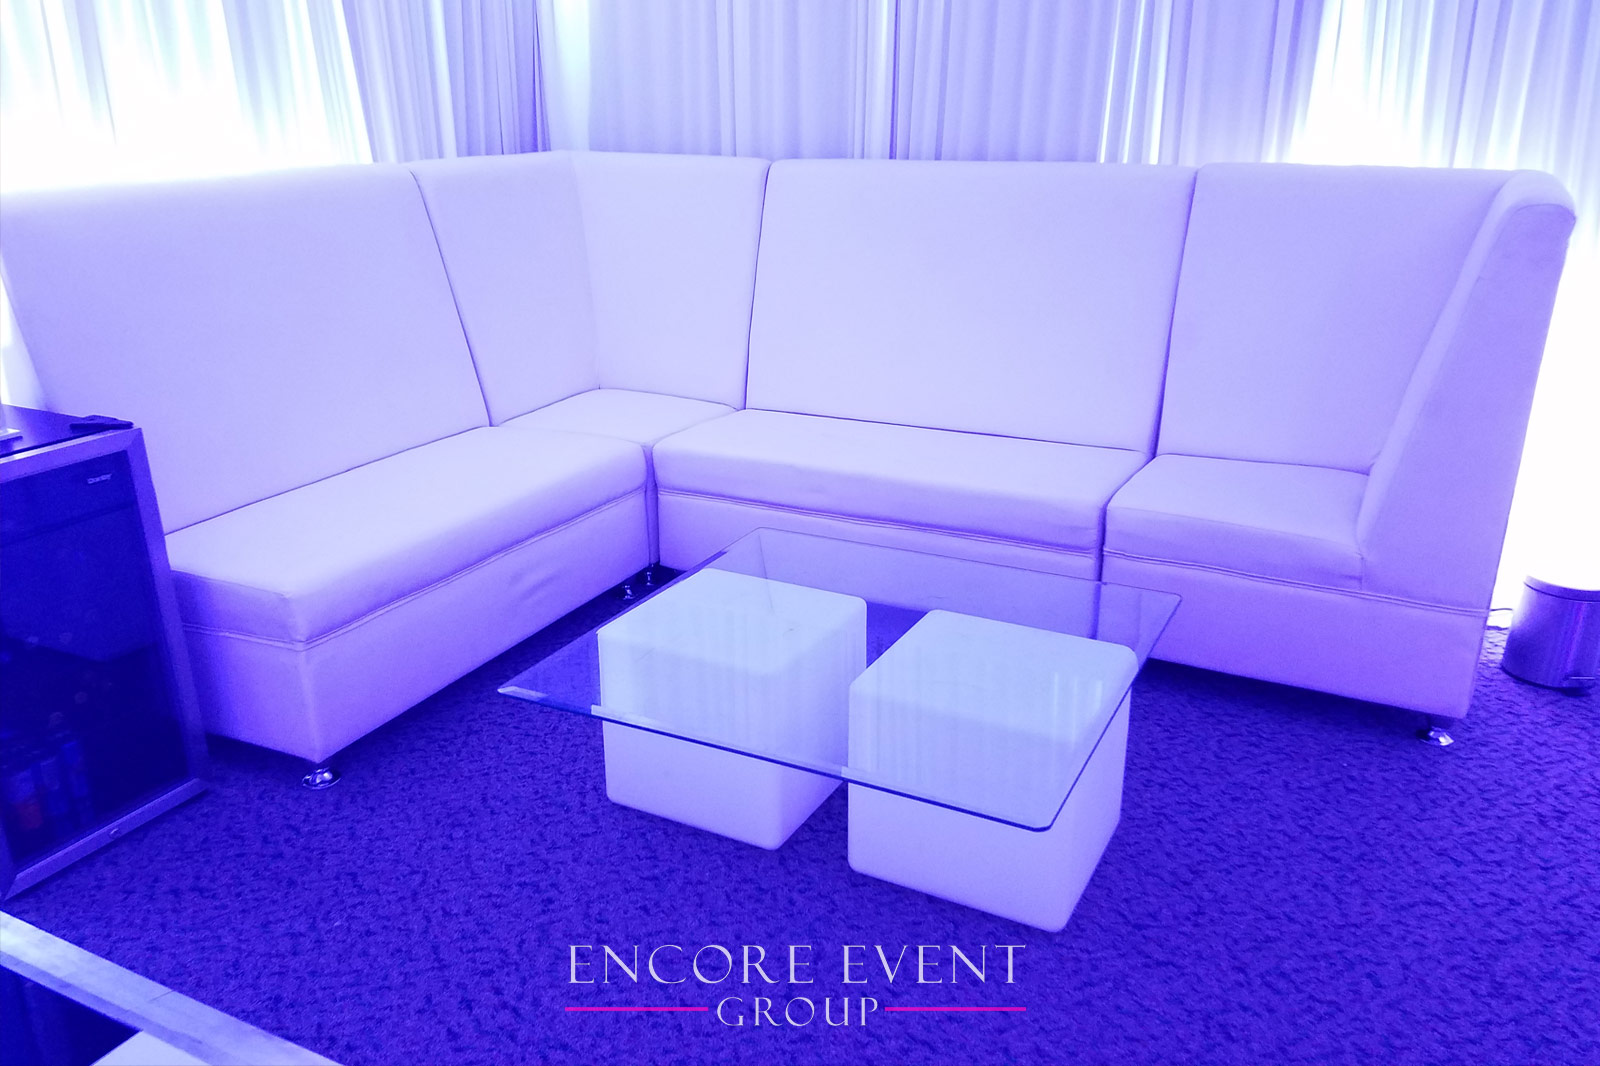 Michigan White Lounge Furniture Rentals | Couches | Thrones